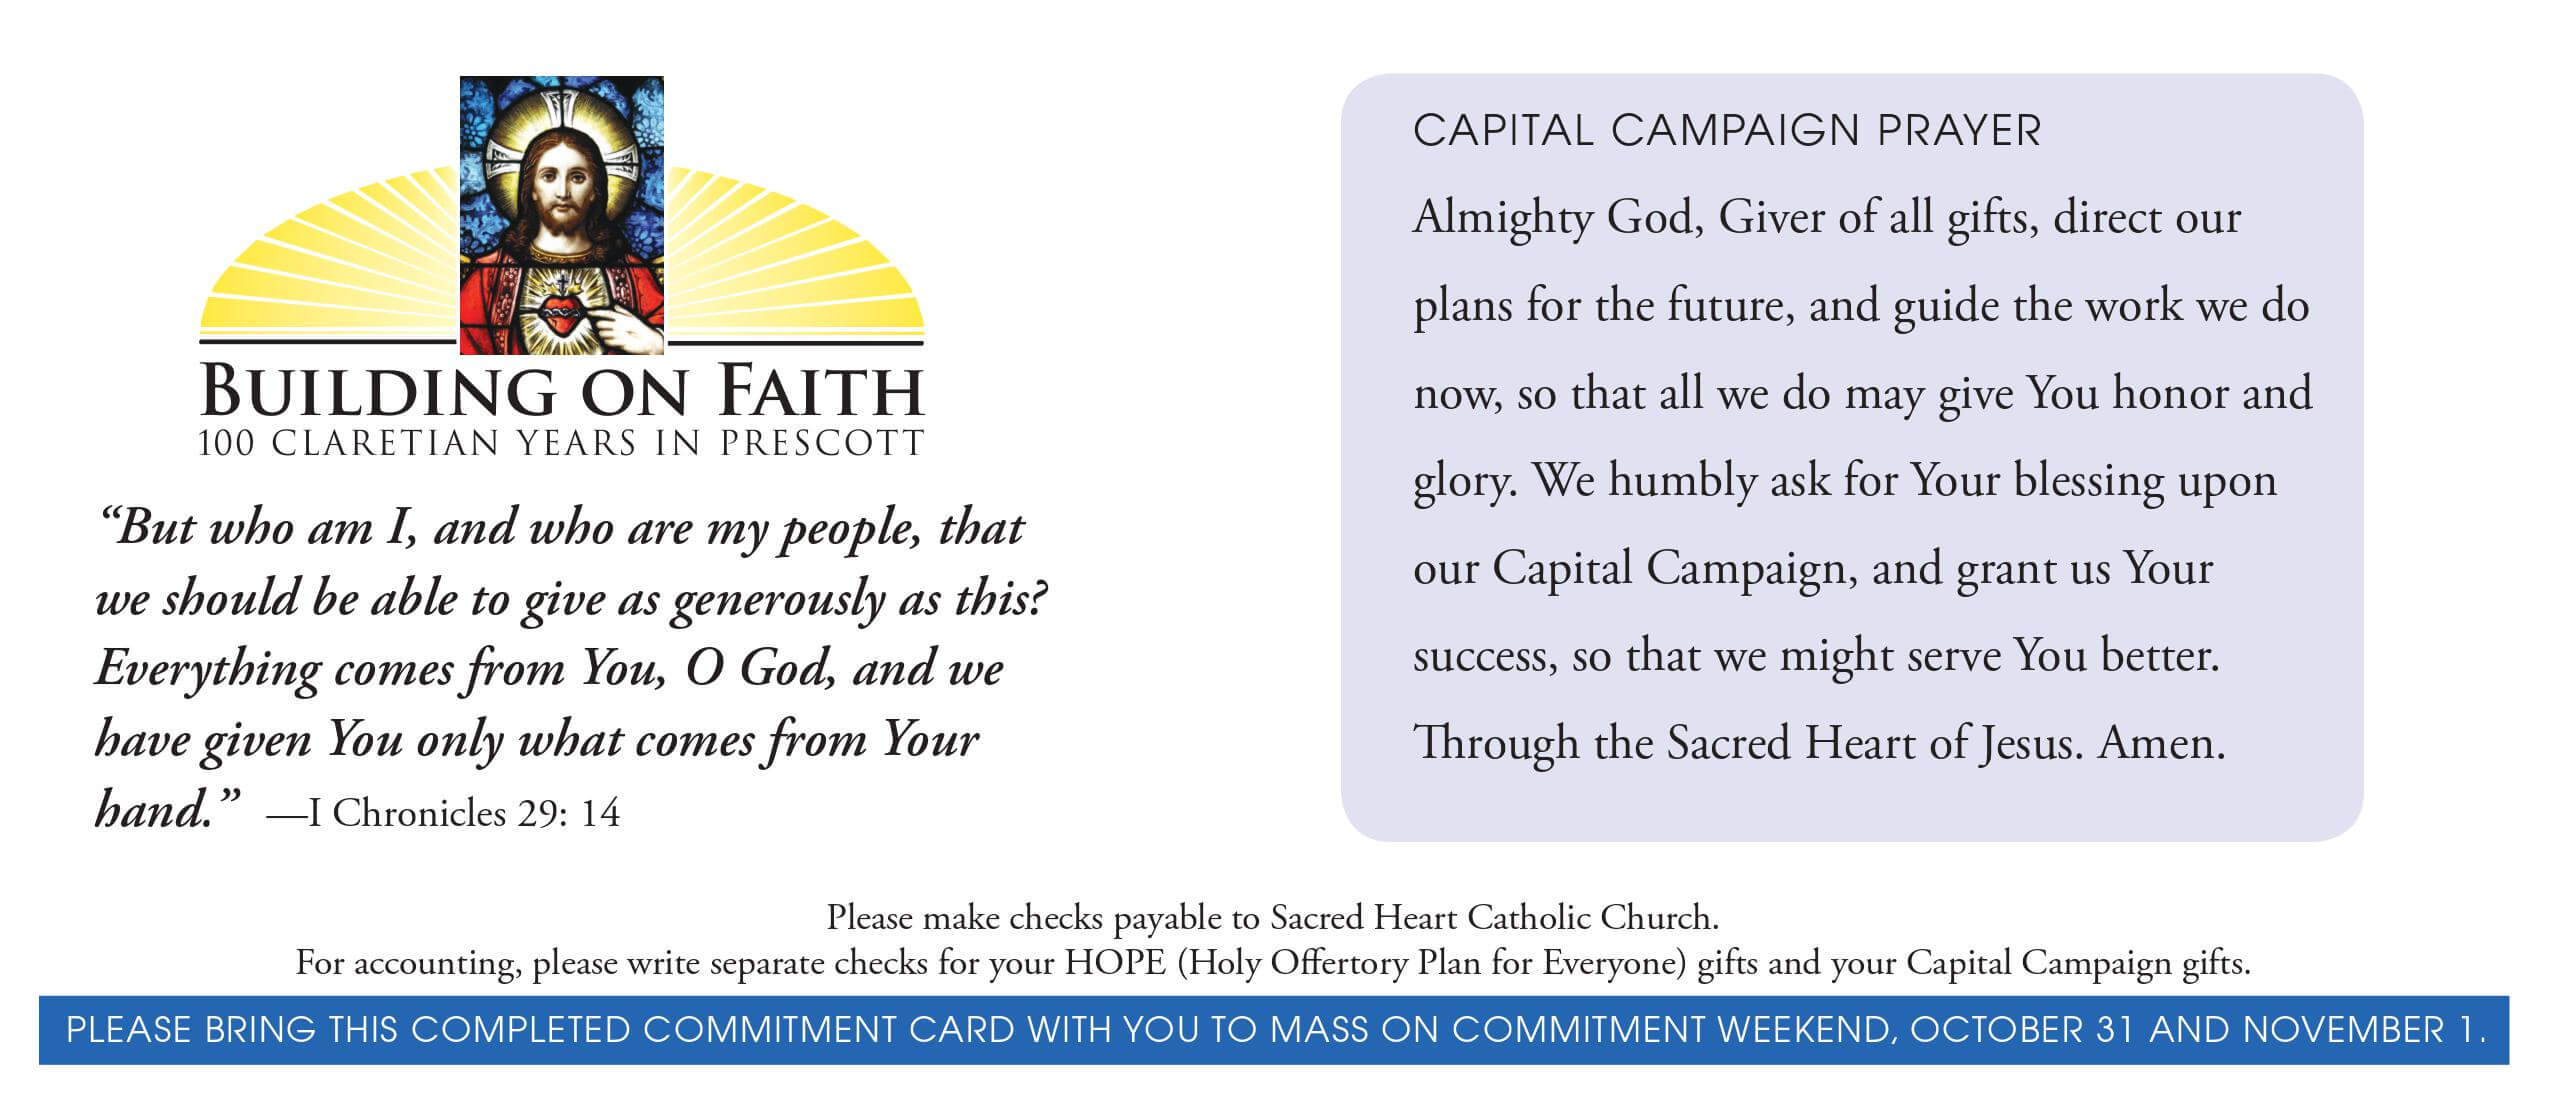 Church Capital Campaign Pledge Card Samples inside Pledge Card Template For Church